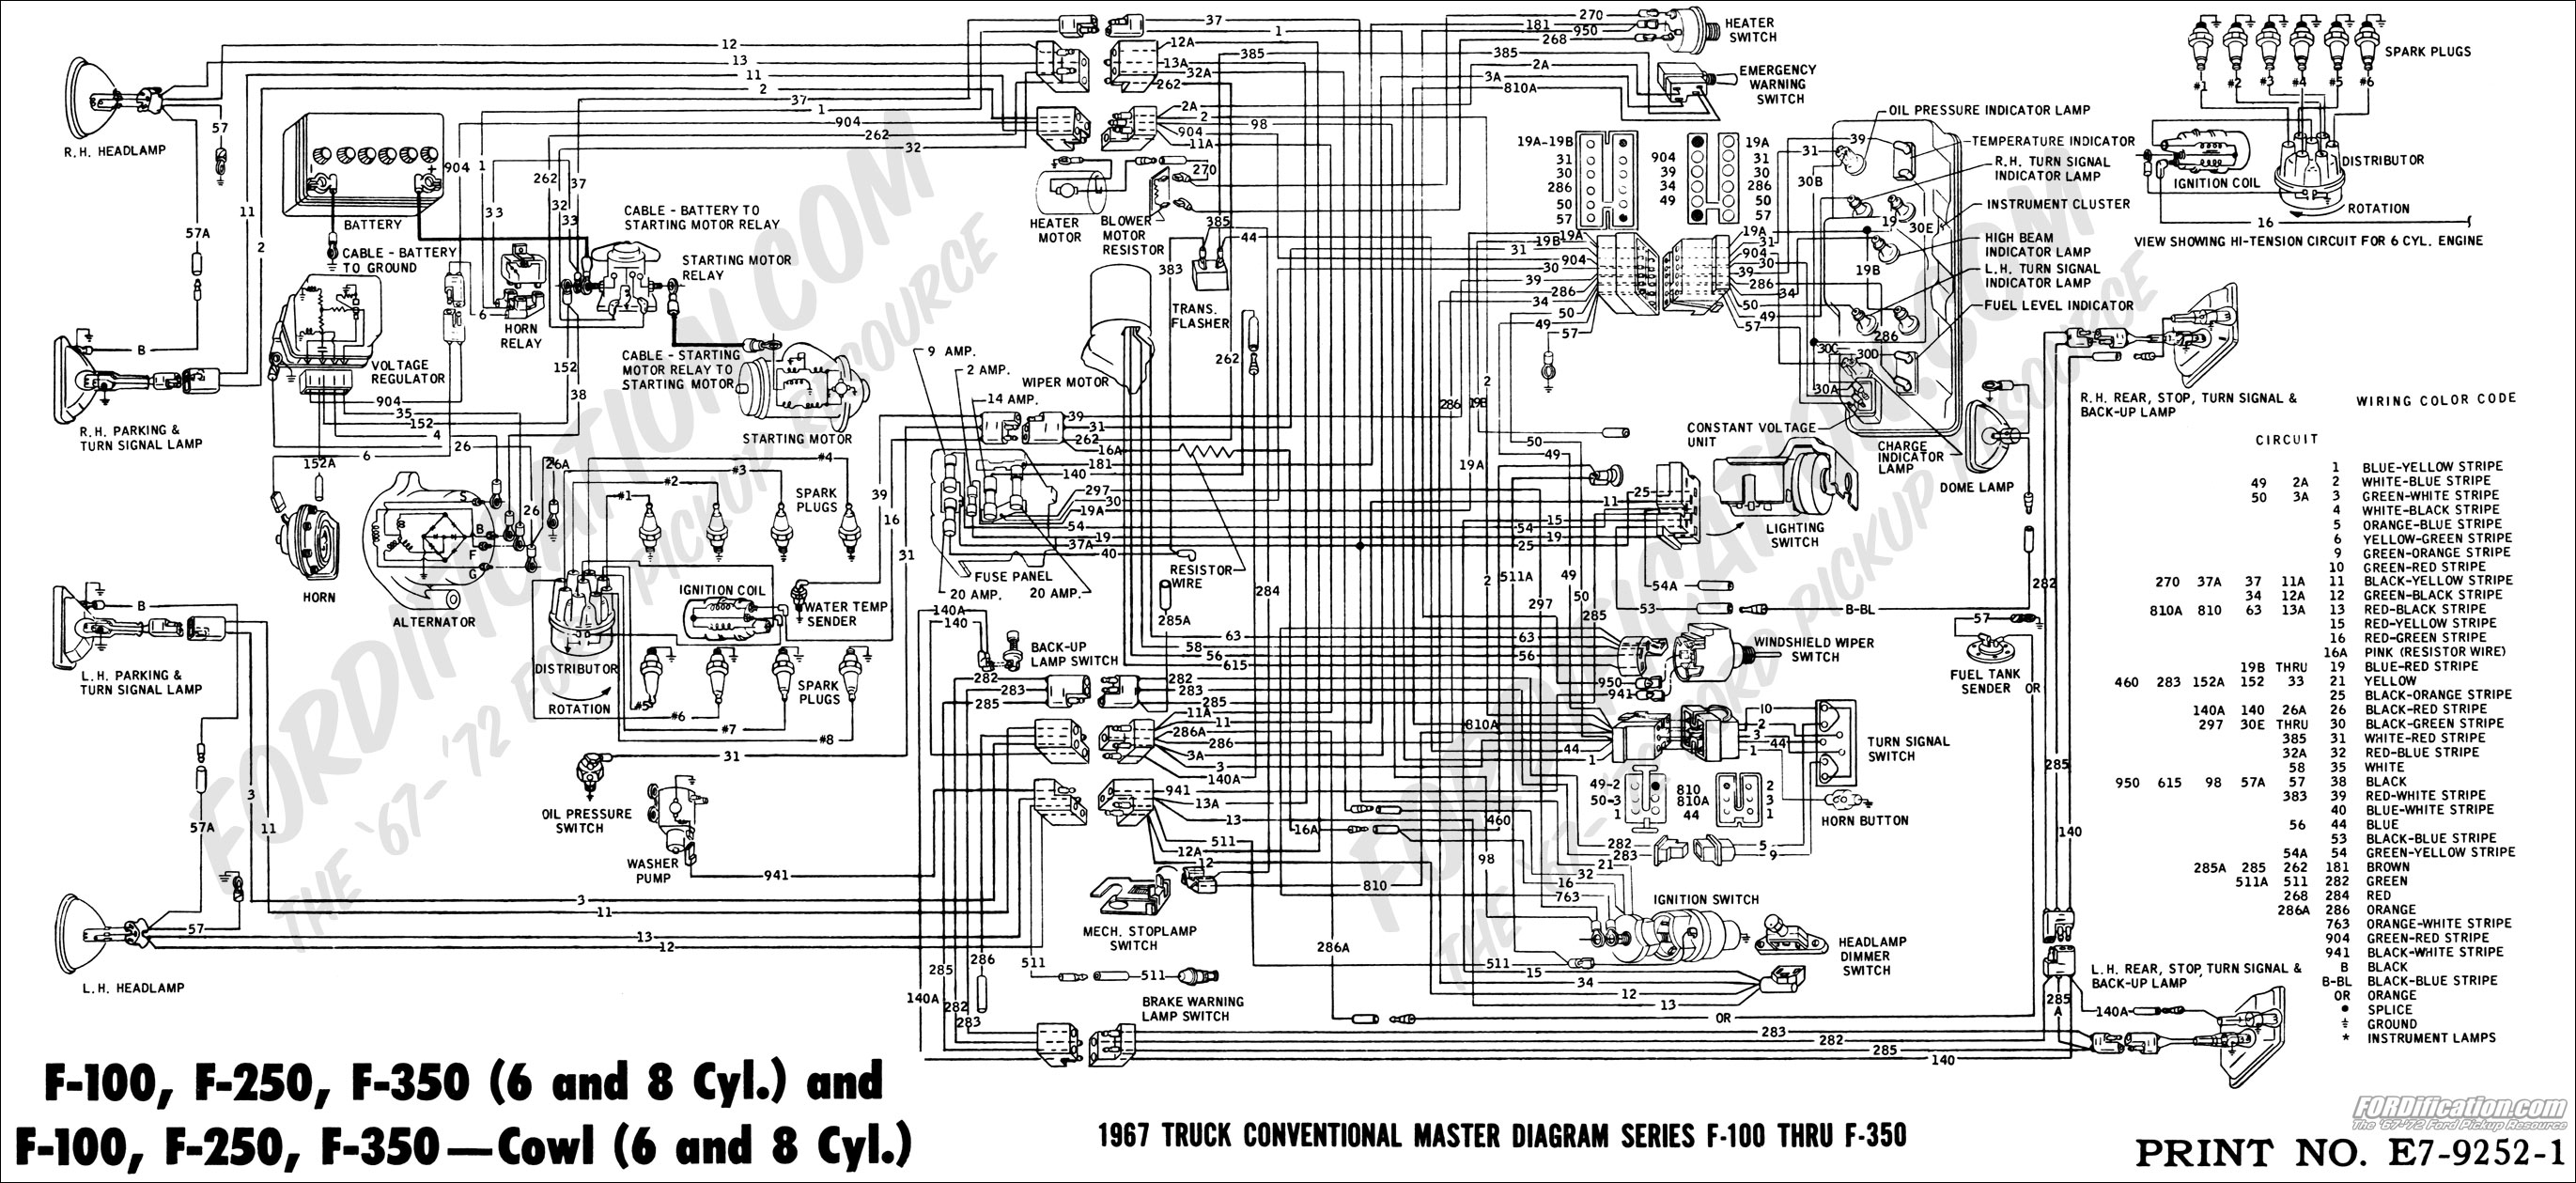 f450 wiring diagram ford f super duty questions need a installation 1998 Ford Contour Engine Diagram ford wiring diagram wiring diagrams